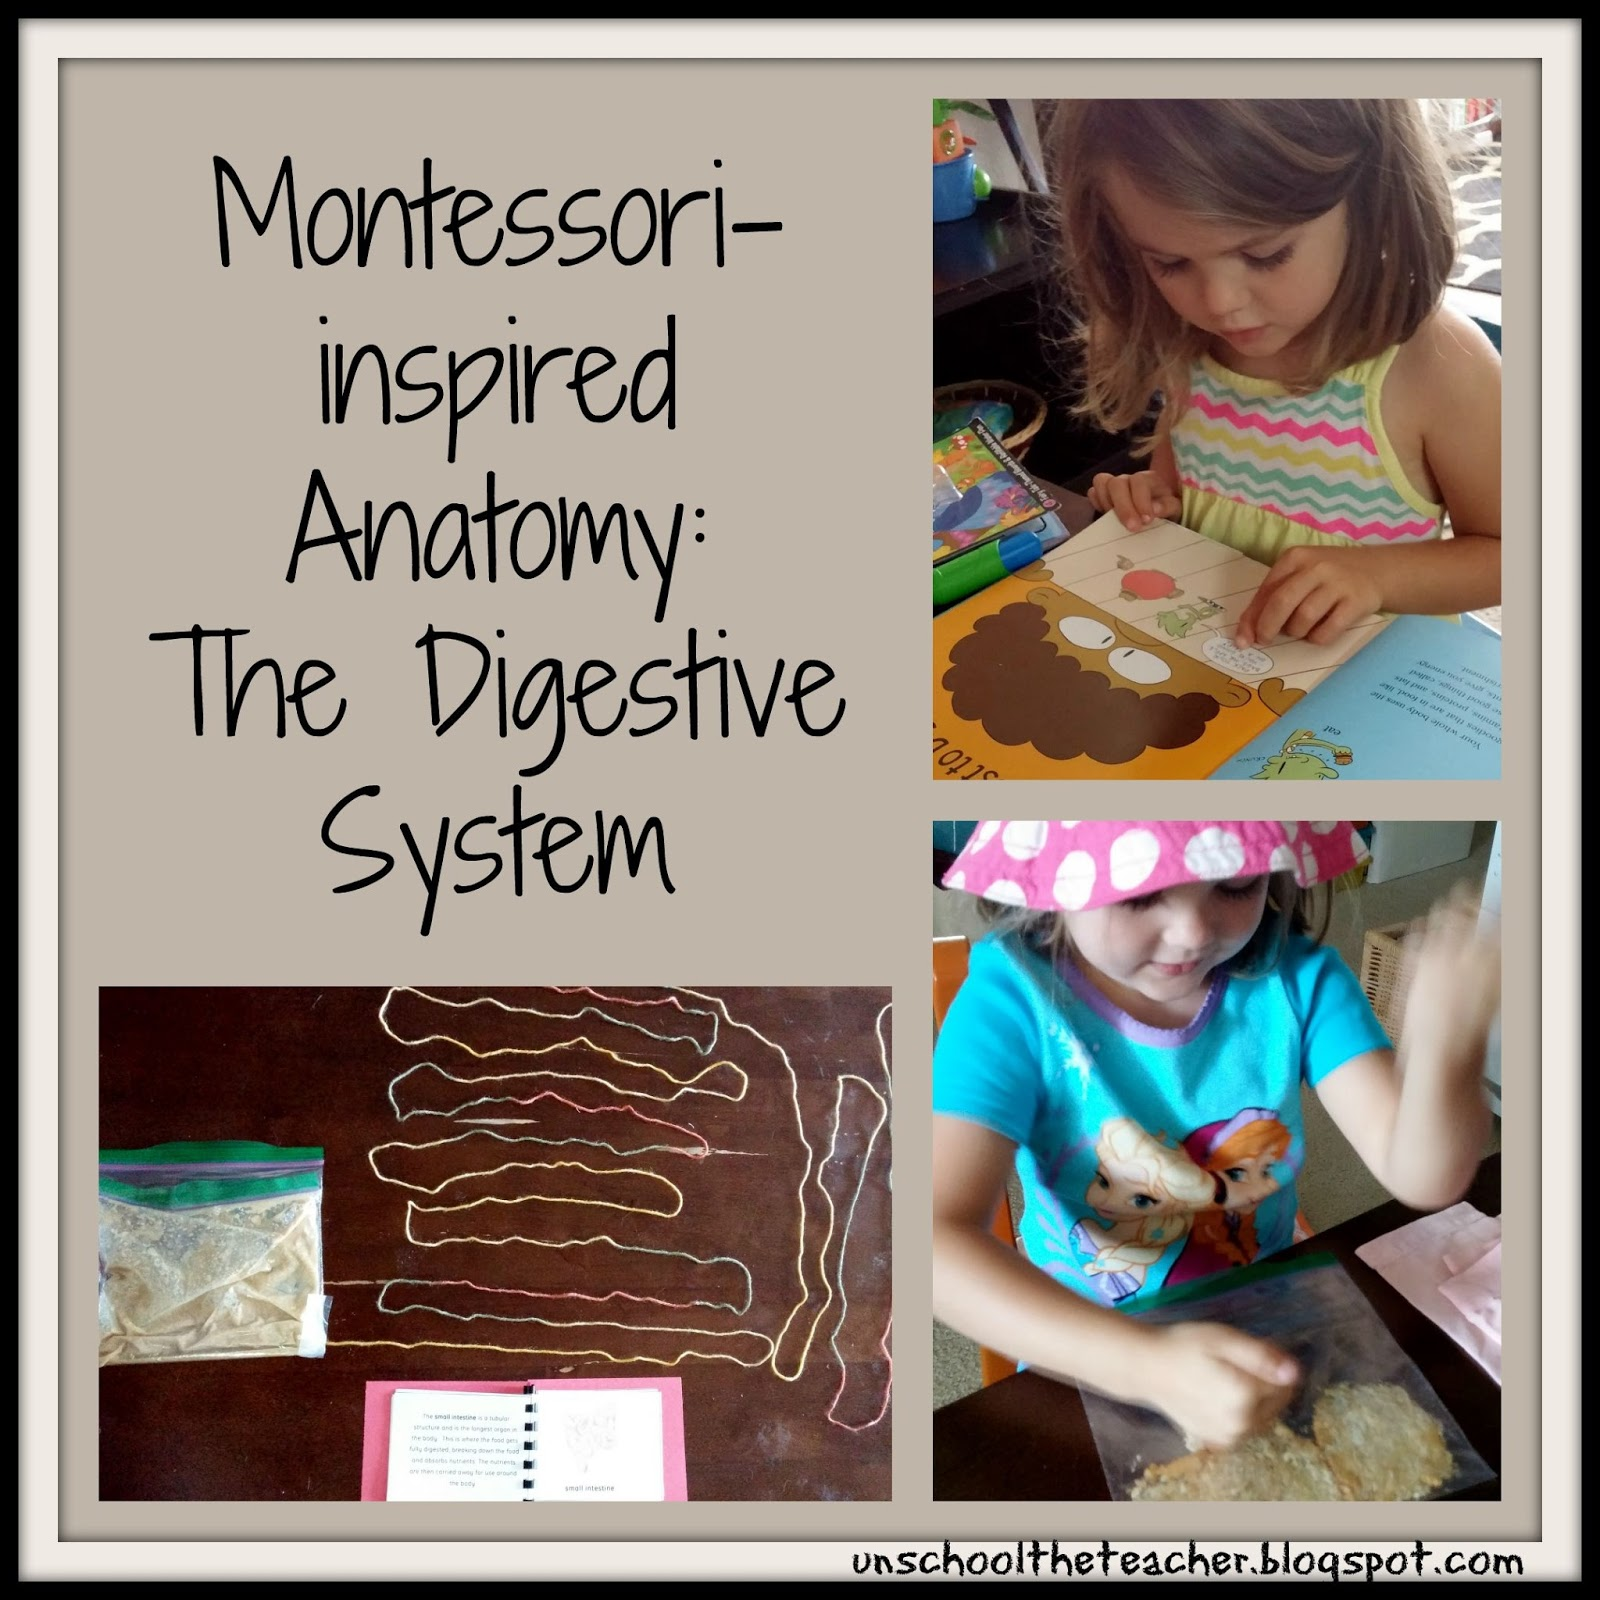 Unschool The Teacher The Digestive System For Kids